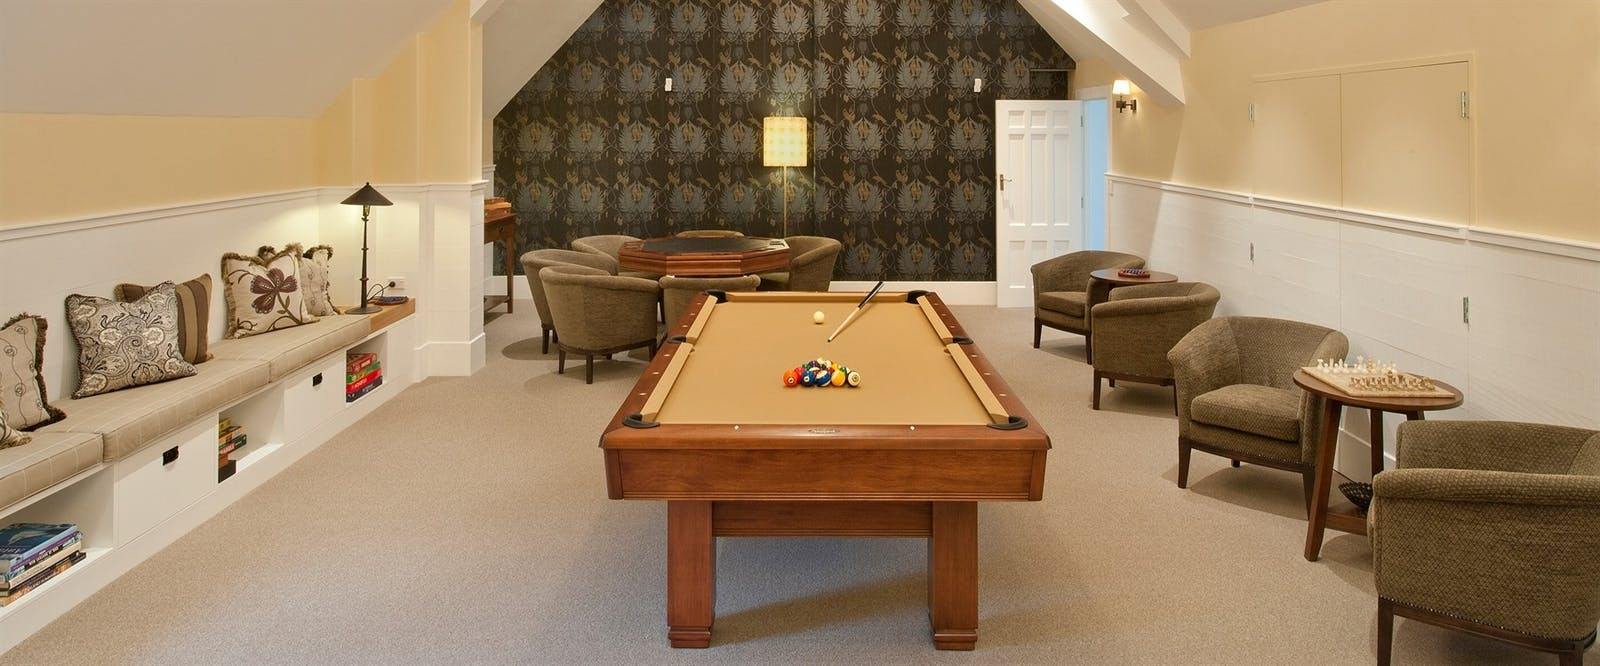 Games RoomLounge at Wharekauhau Country Estate, Palliser Bay